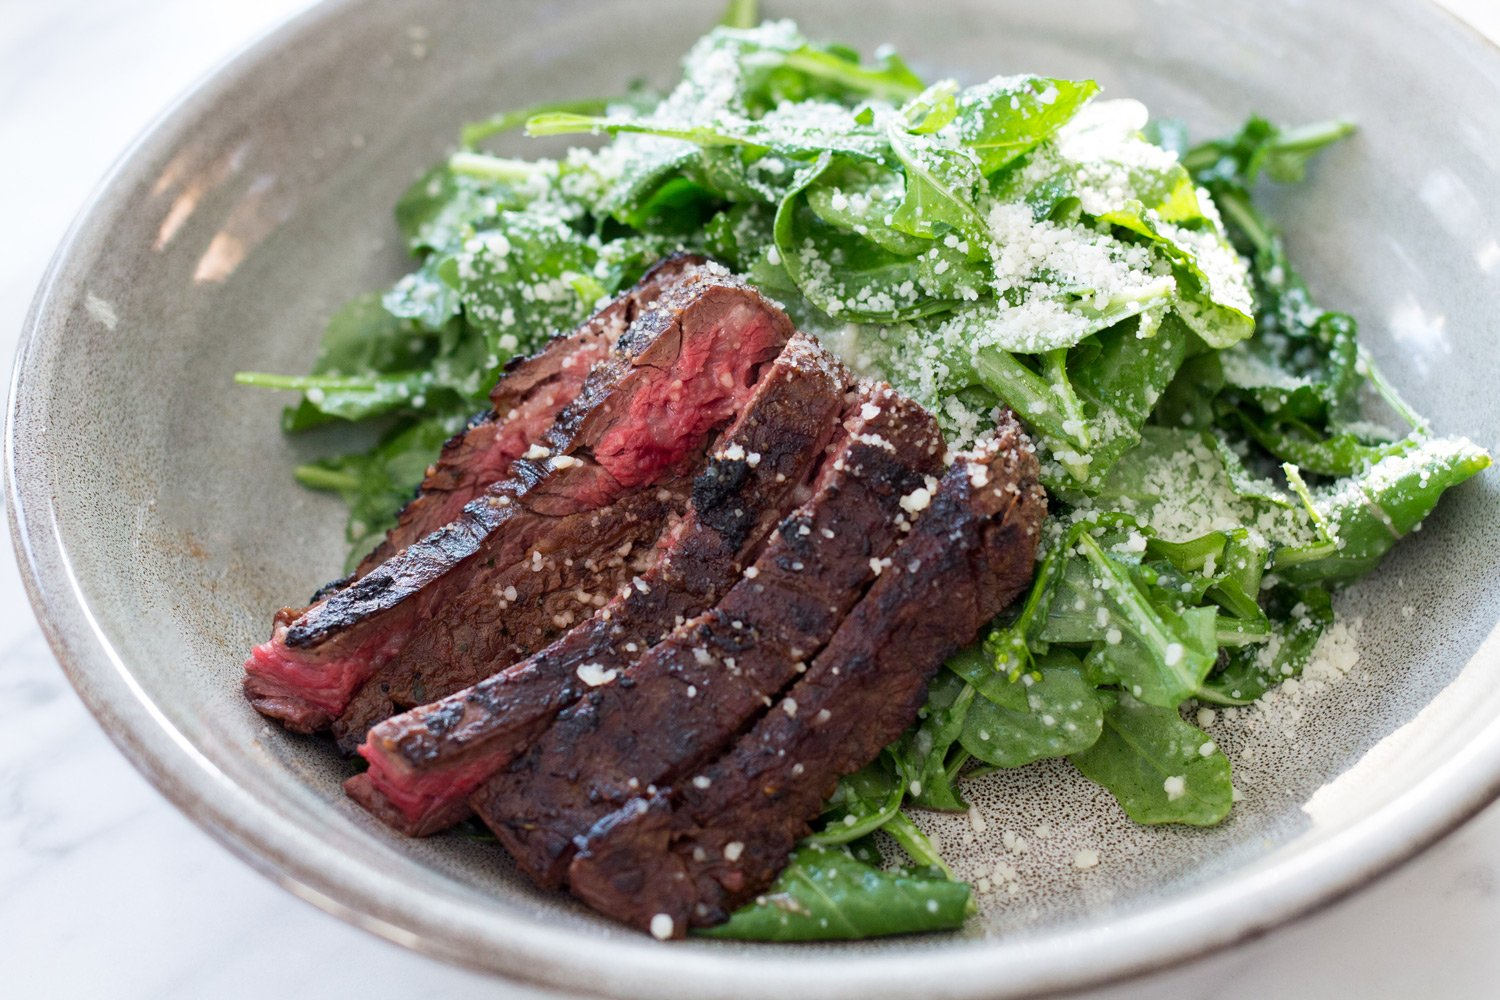 The Wild Arugula Salad With Skirt Steak from the Henry Restaurant in Coronado